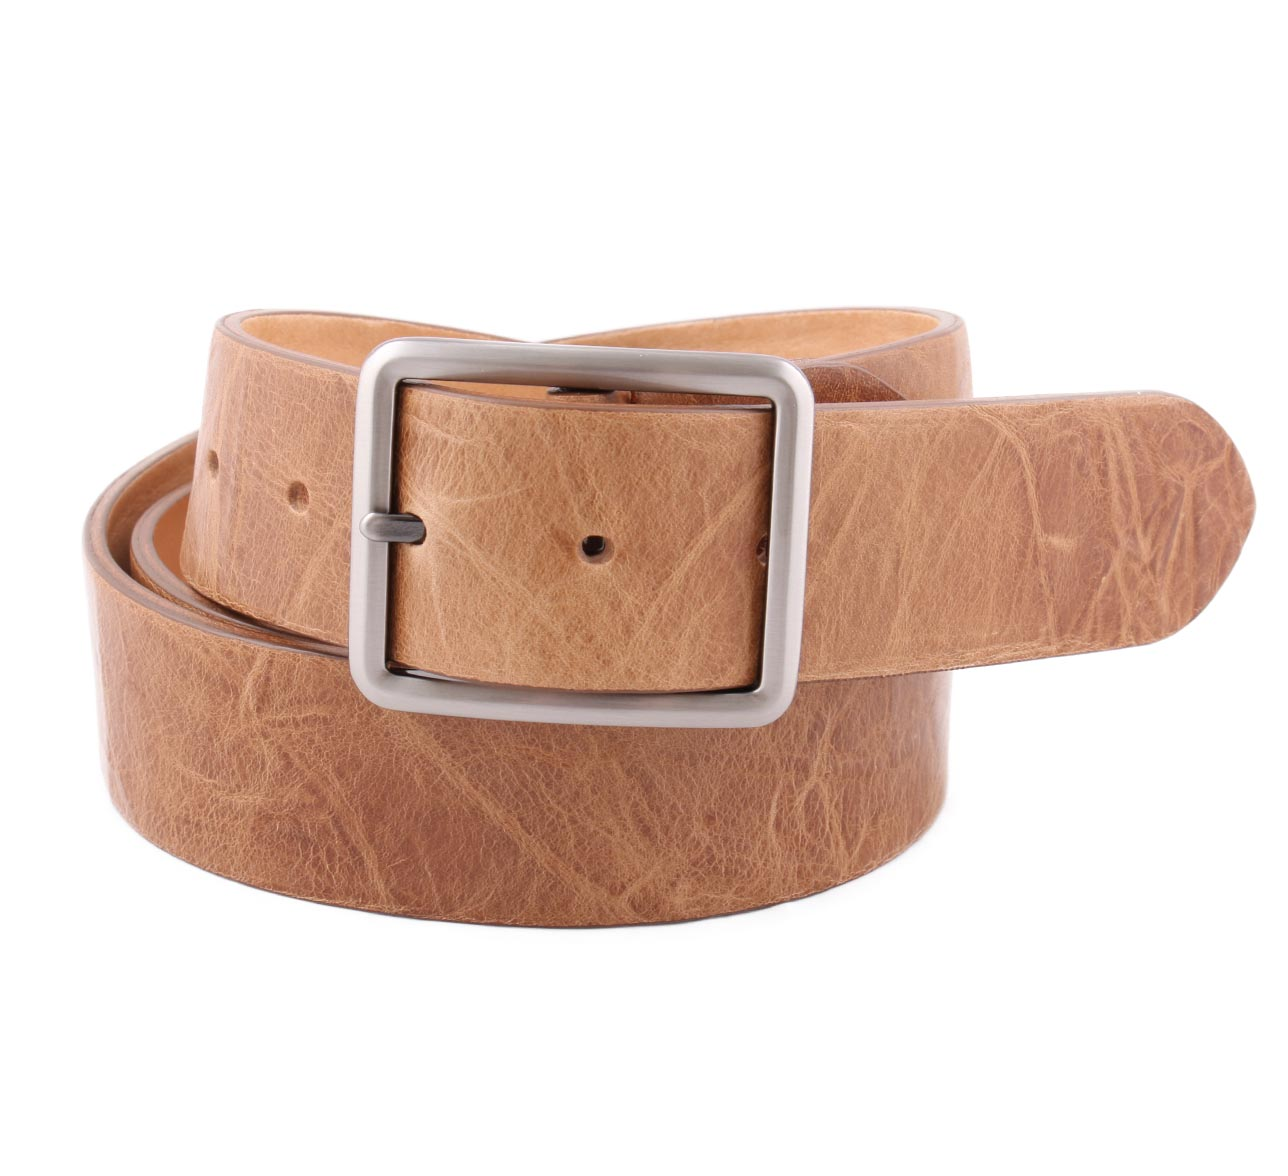 Ceinture, Bretelle Marron L'admirable